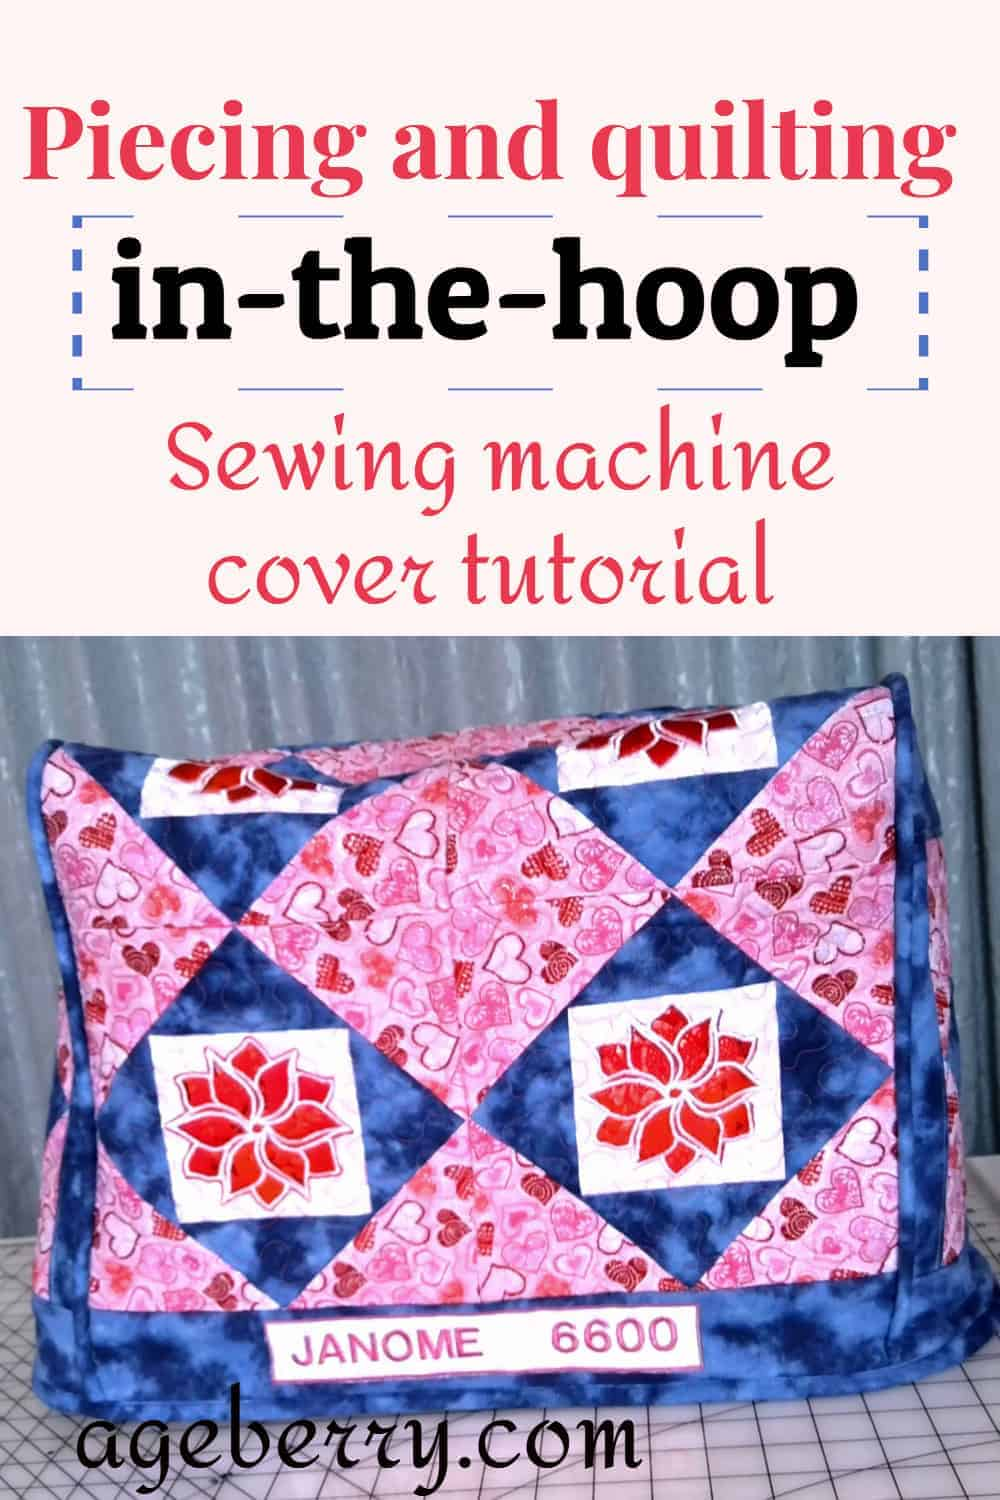 quilting in the hoop with an embroidery machine, sewing machine cover